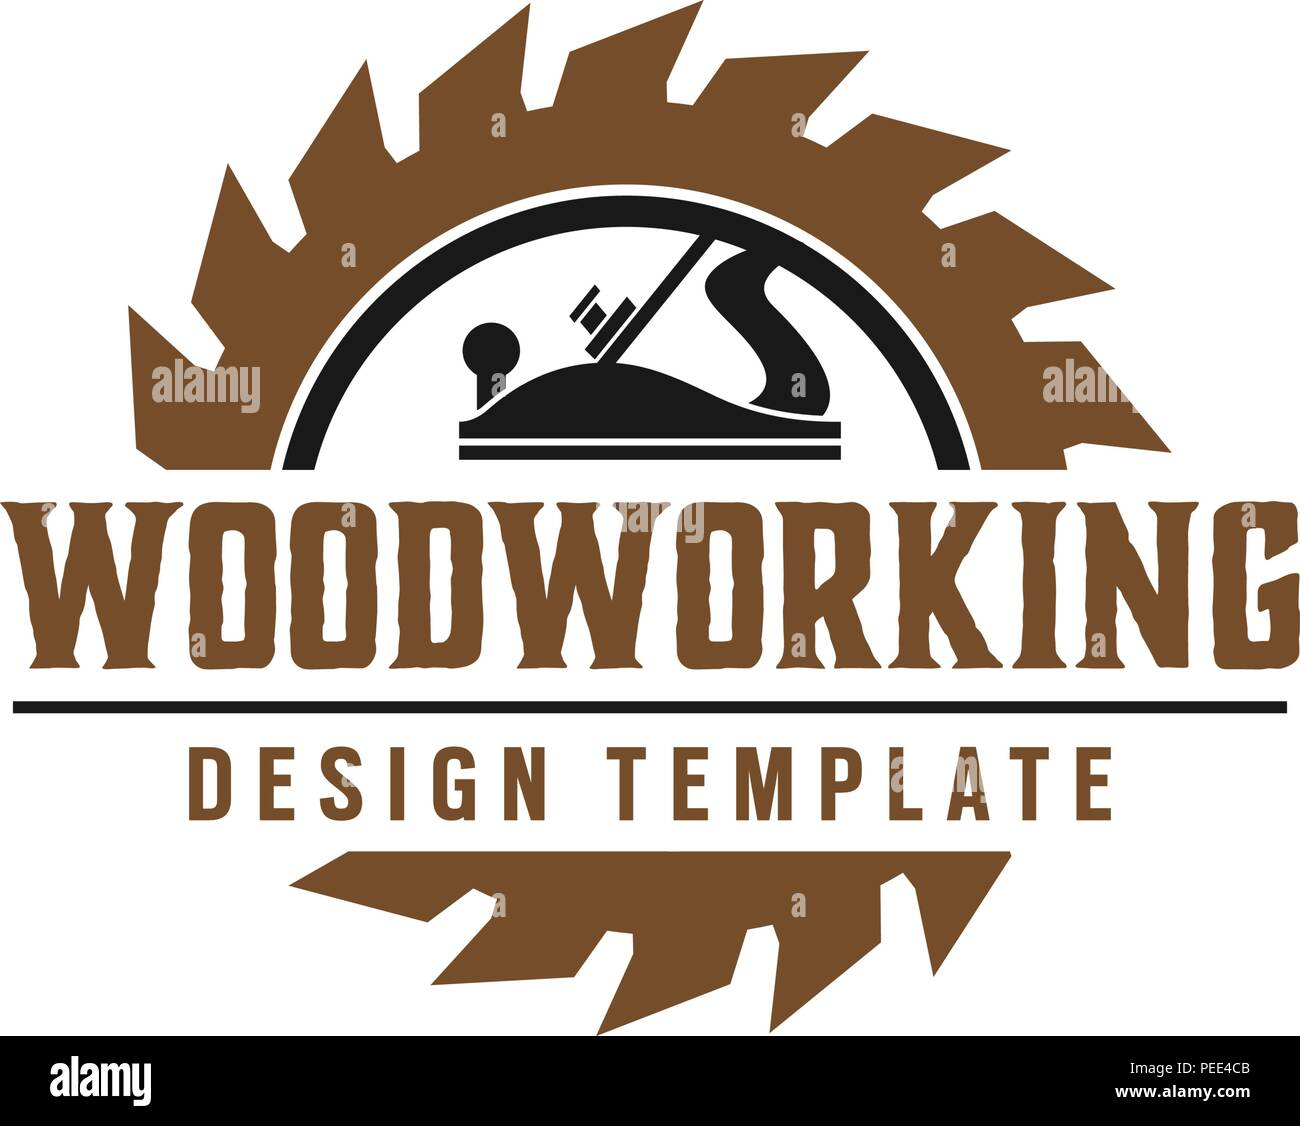 Woodworking gear logo design template vector element isolated Stock Vector